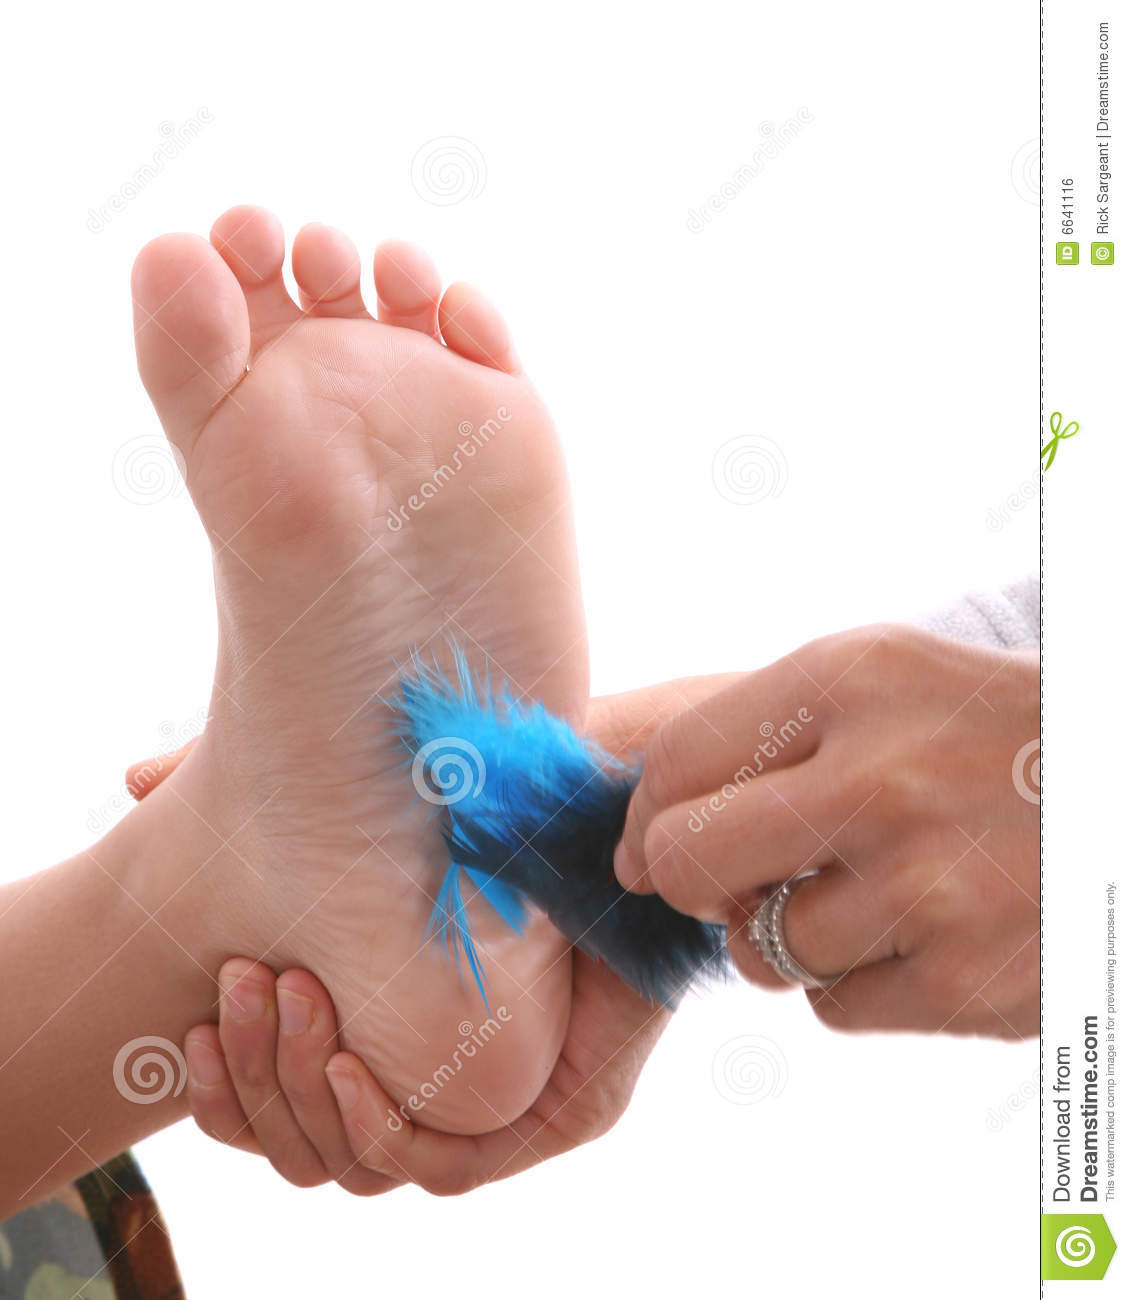 Feathers tickling childs foot